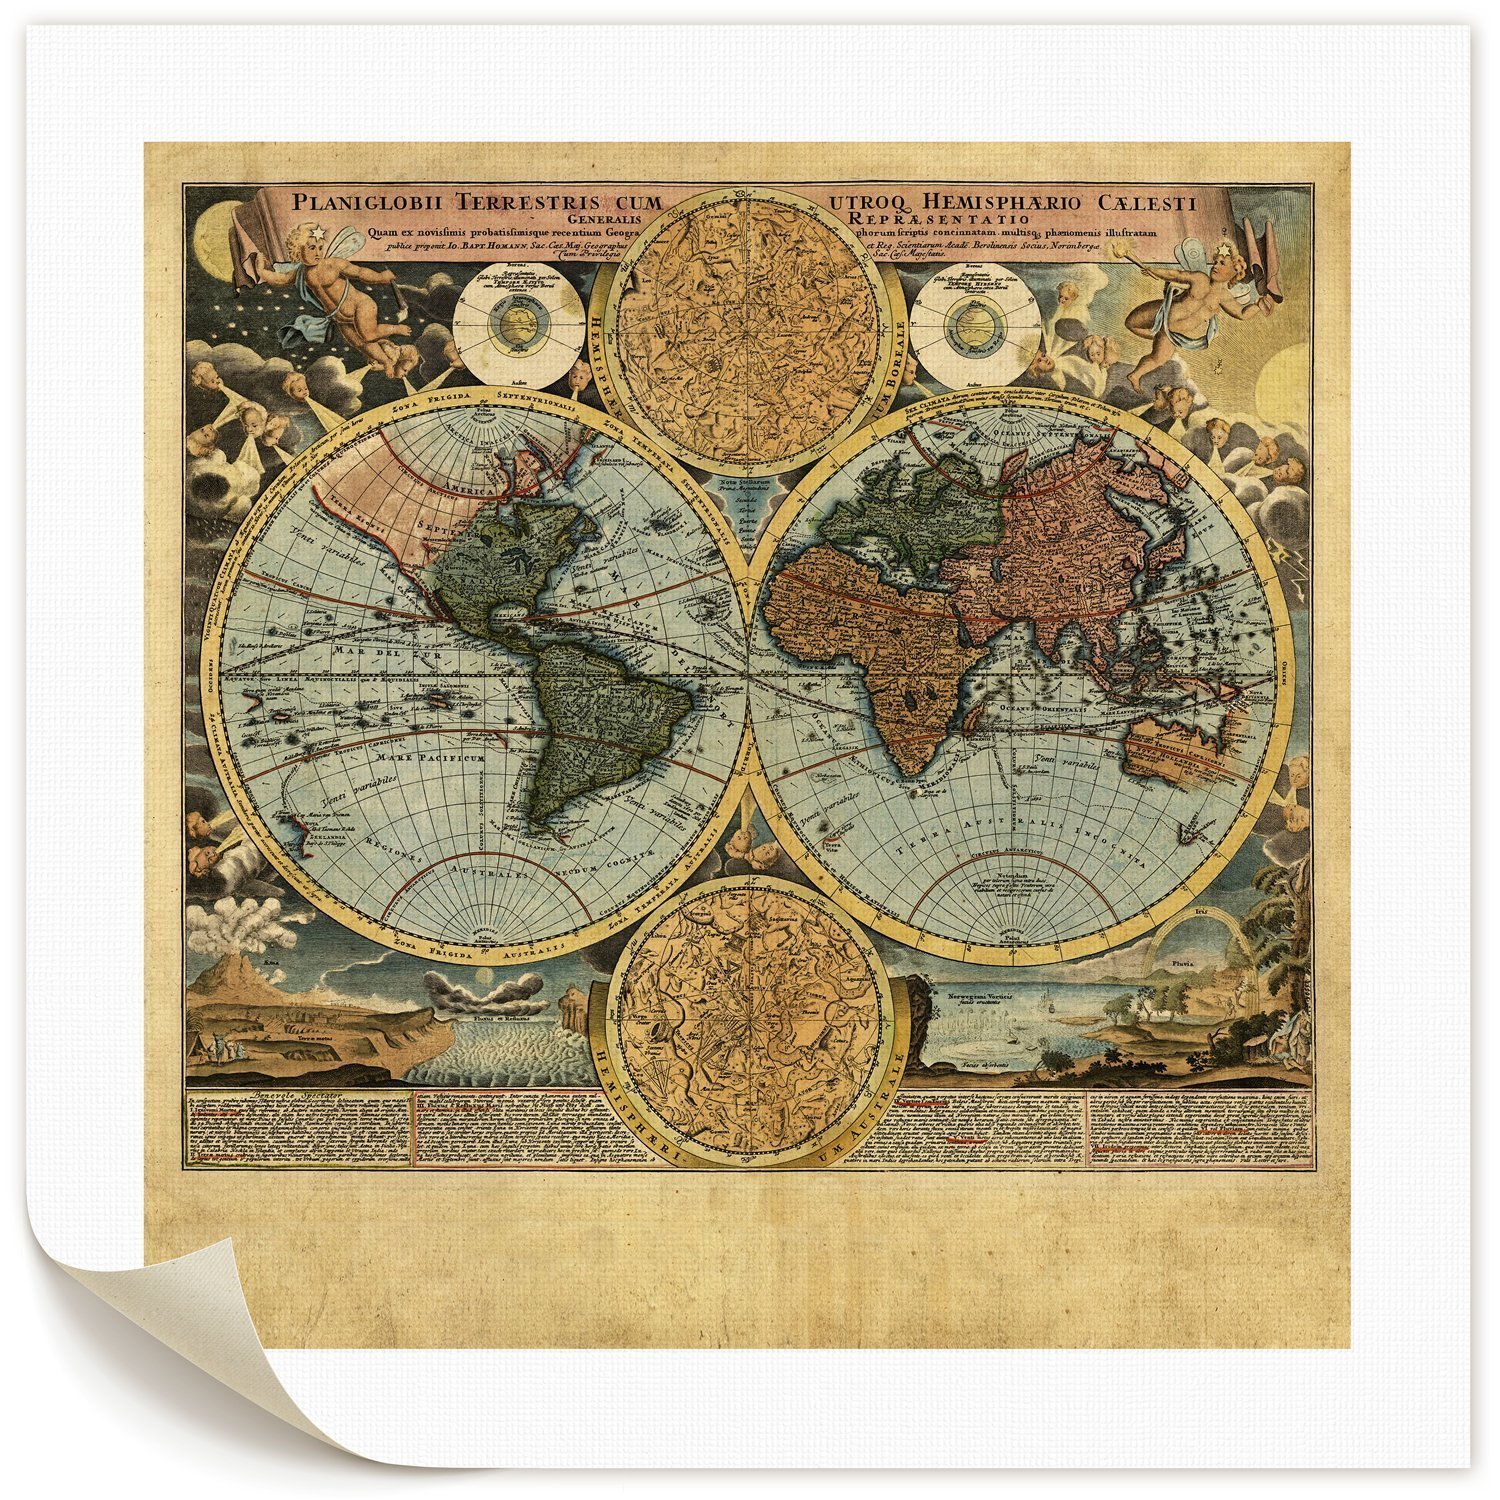 Cheap wall map art find wall map art deals on line at alibaba get quotations donglin art wall art vintage world map paintings poster prints on canvas oil paintings for gumiabroncs Gallery